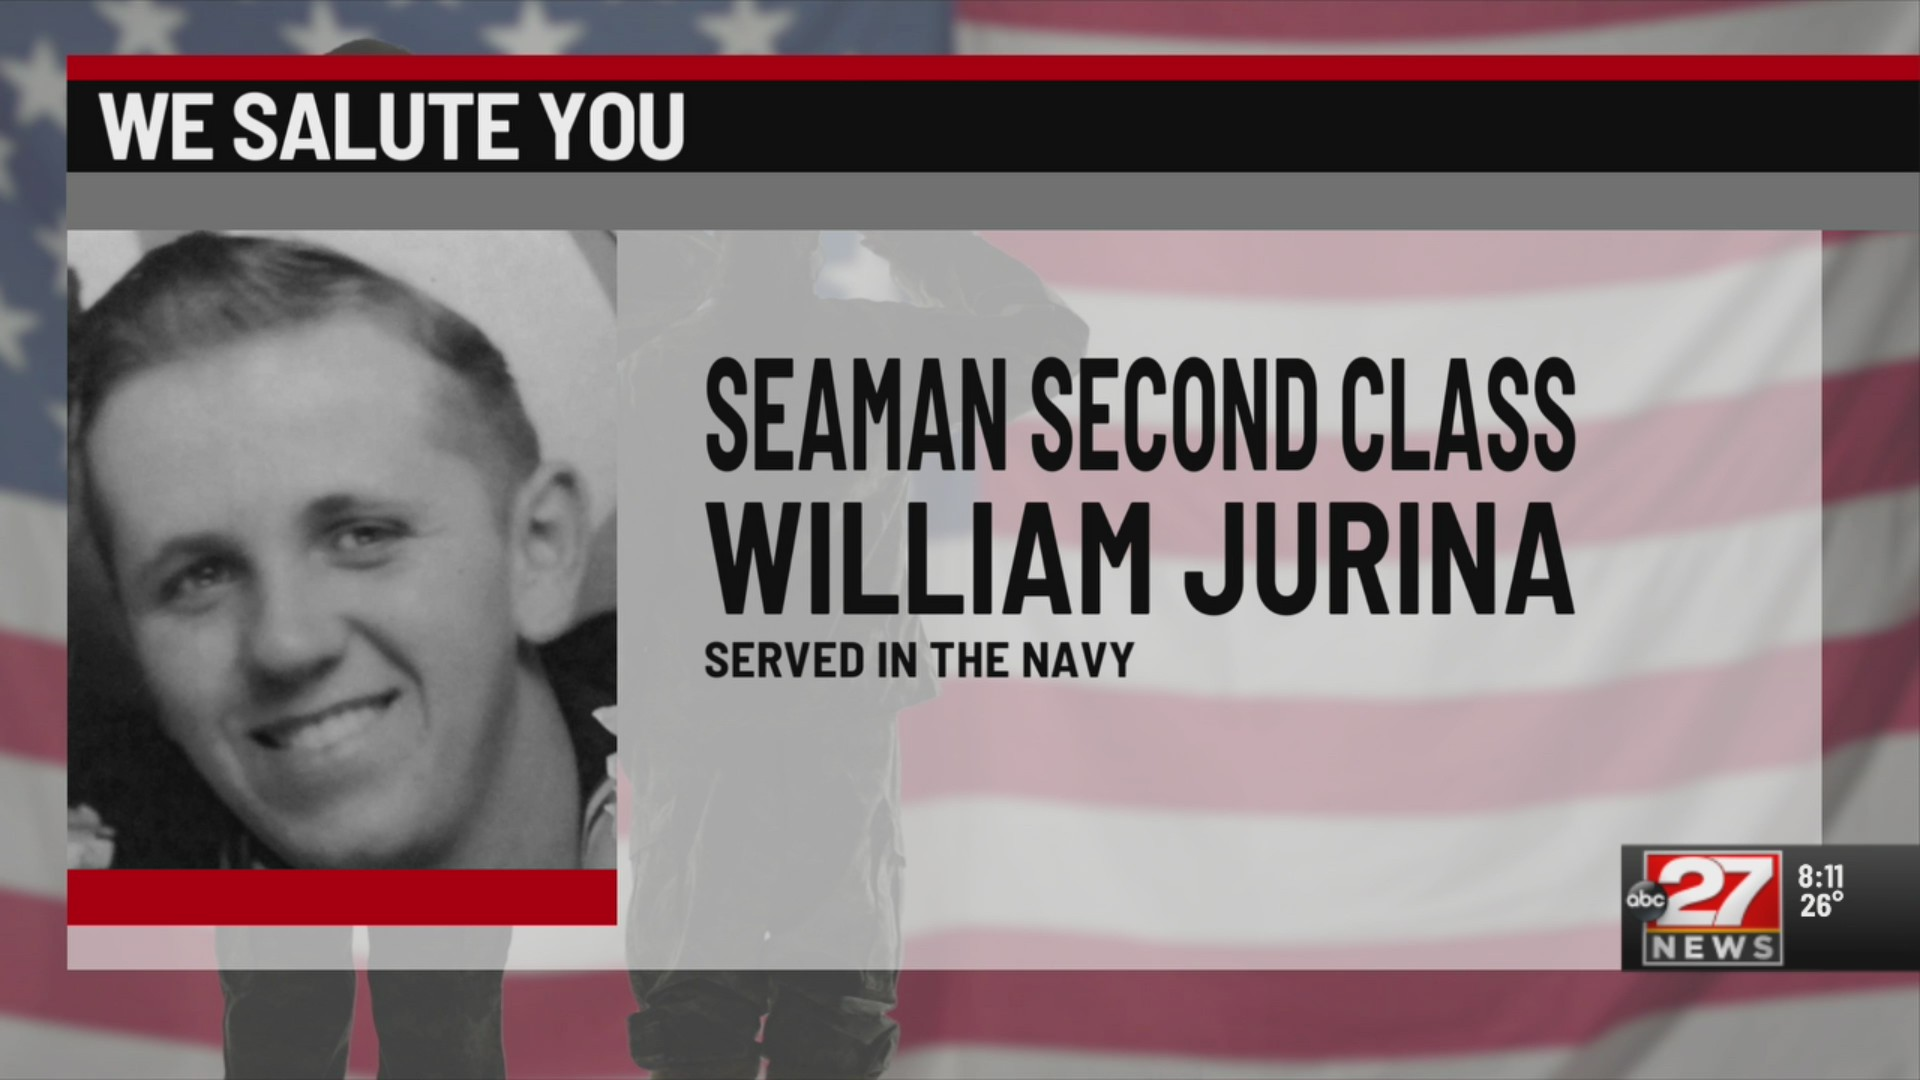 We Salute You William Jurina